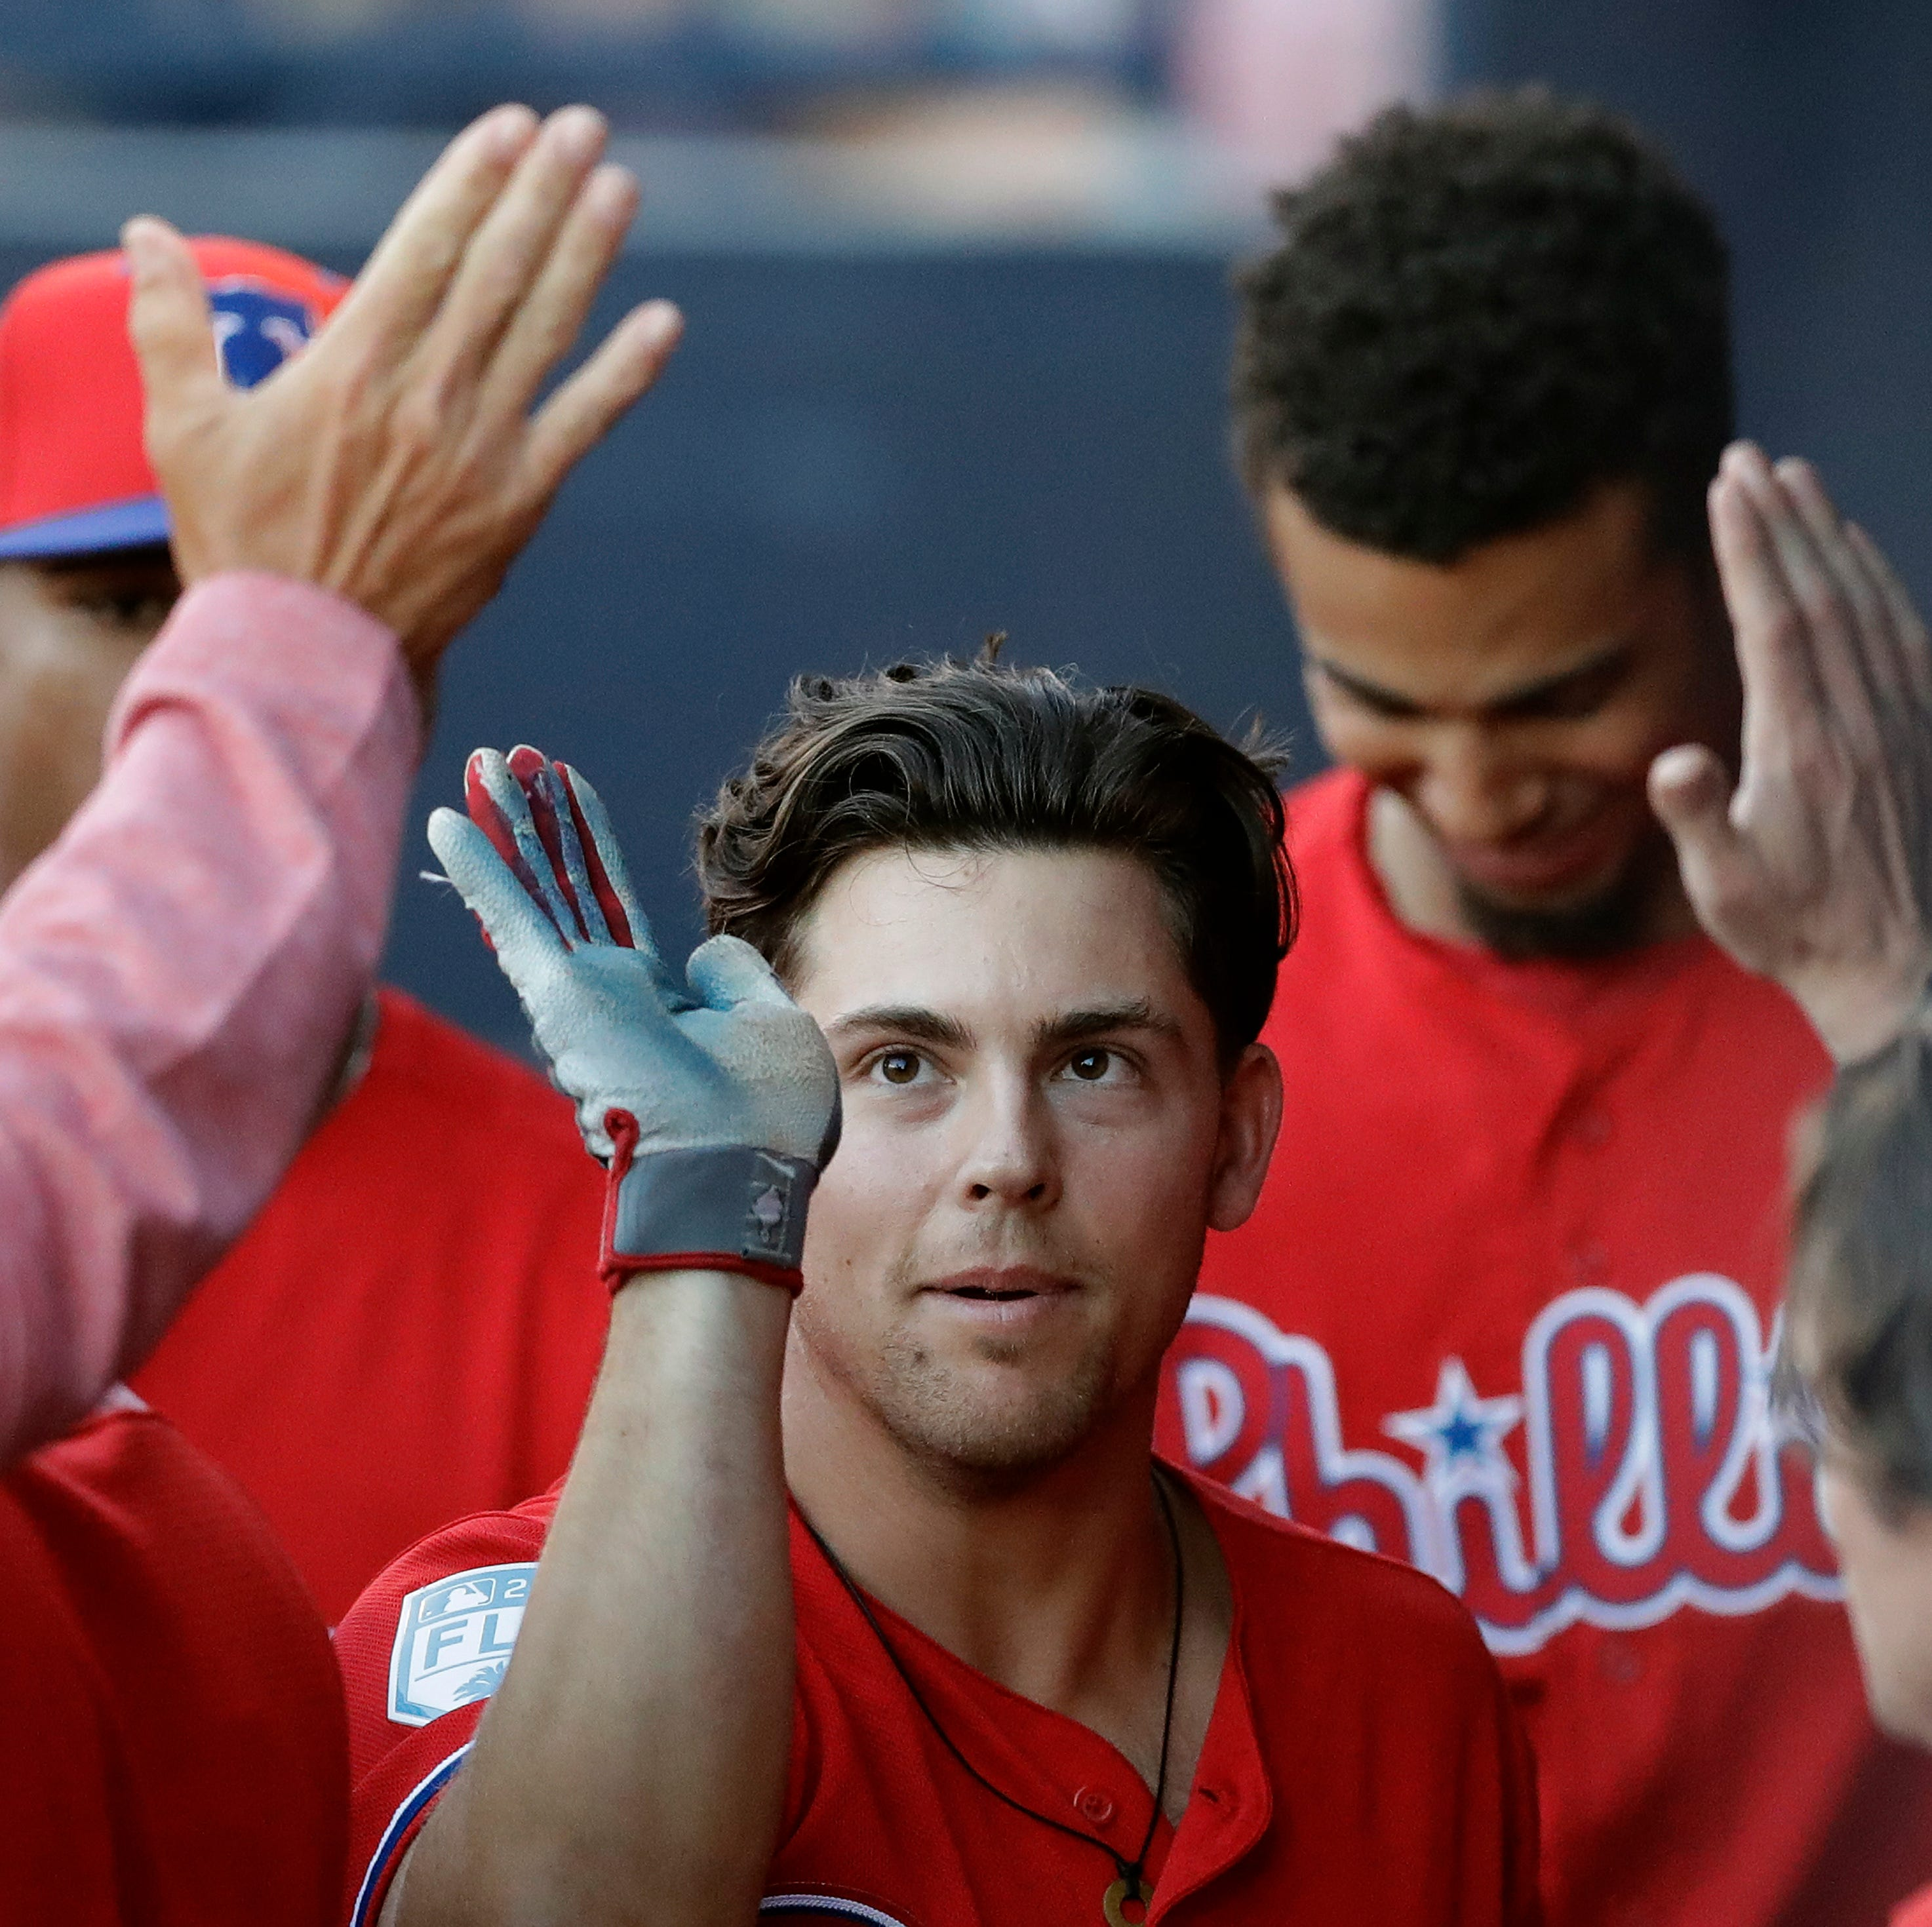 Phillies-Rockies lineups with Scott Kingery, Roman Quinn replacing injured players